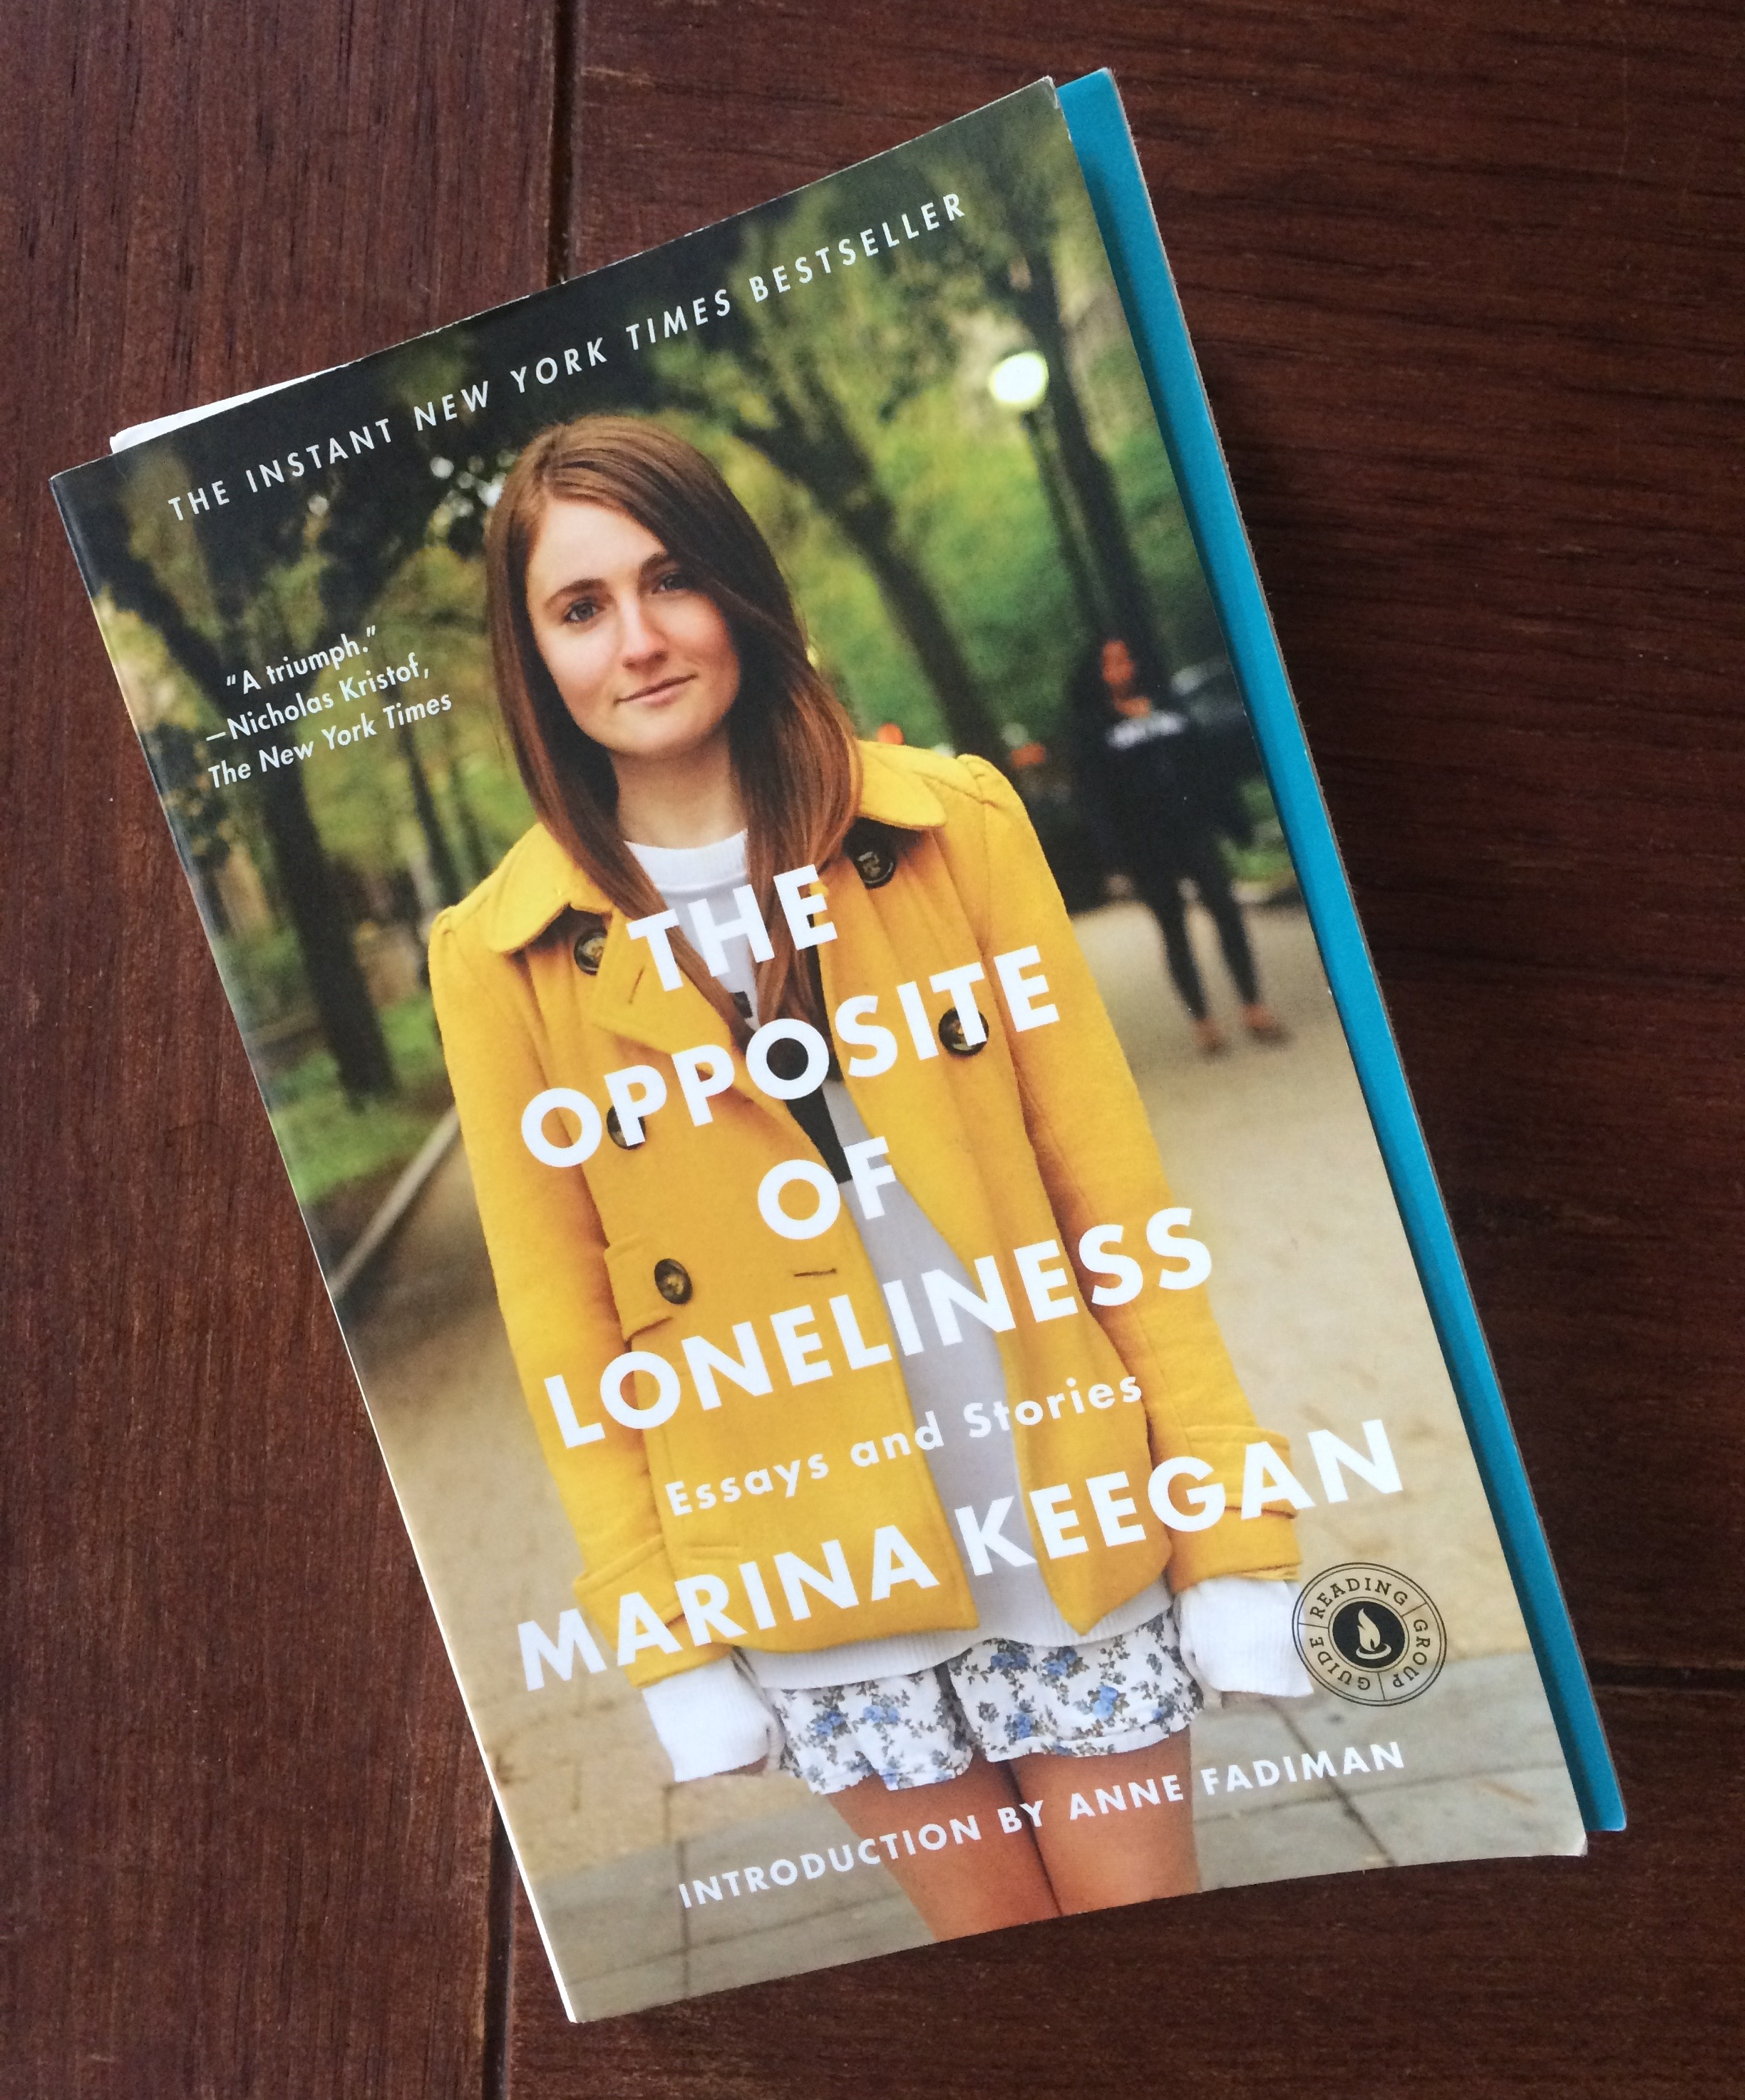 A published afterlife: Marina Keegan s The Opposite of Loneliness